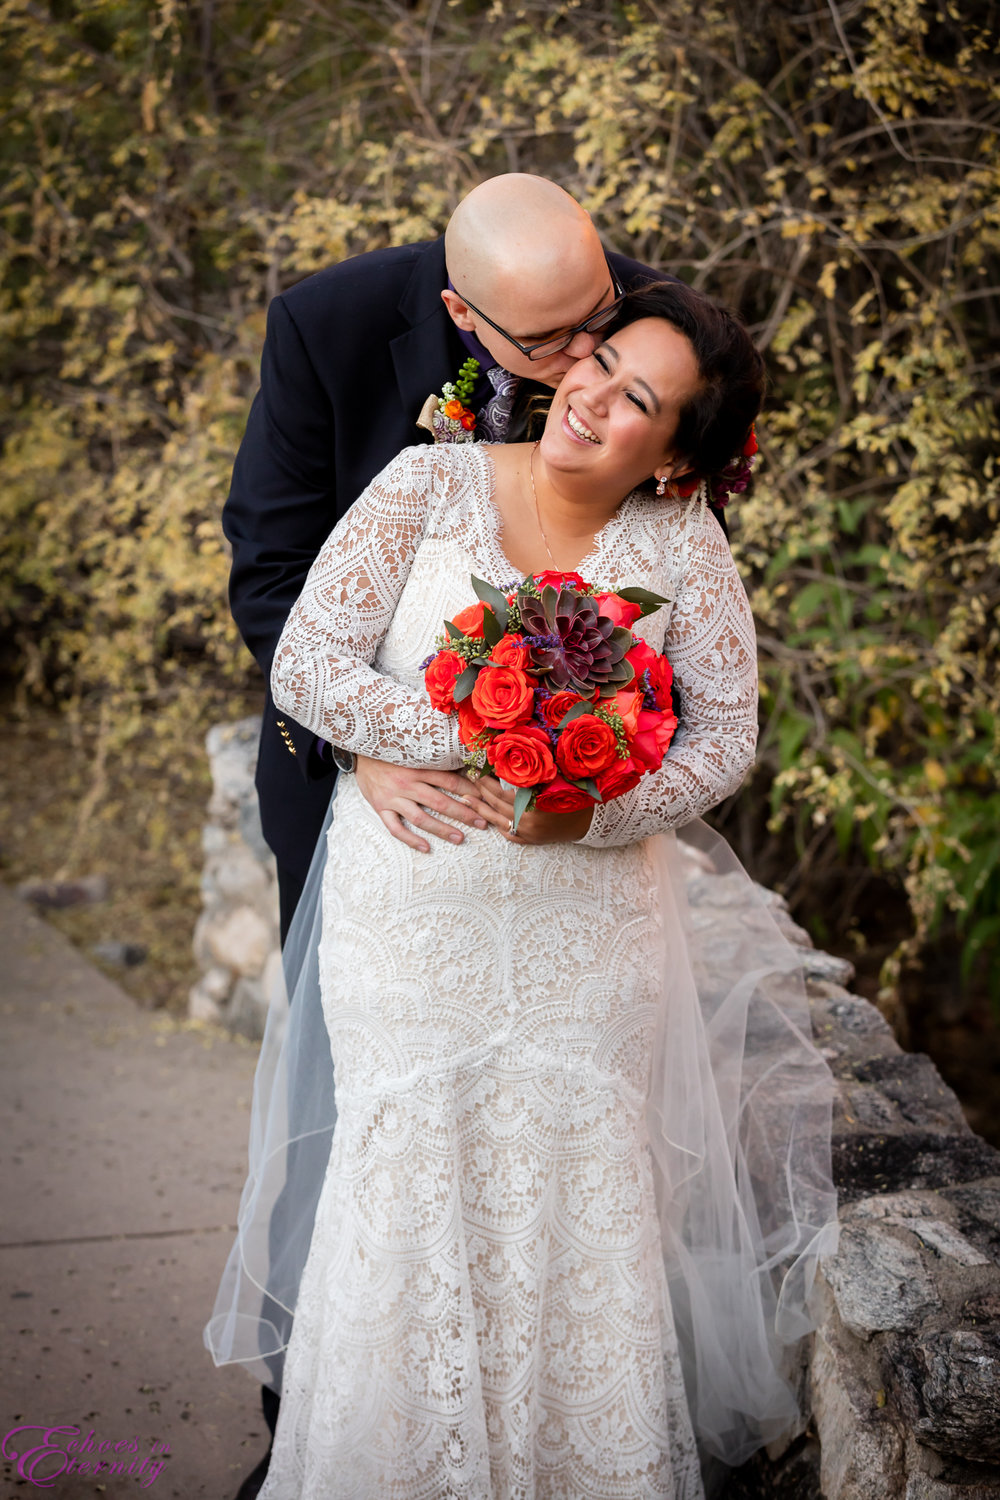 The Wedding of Zuri and George Tucson Arizona Wedding Photographer Lowes Ventana Canyon 12.jpg